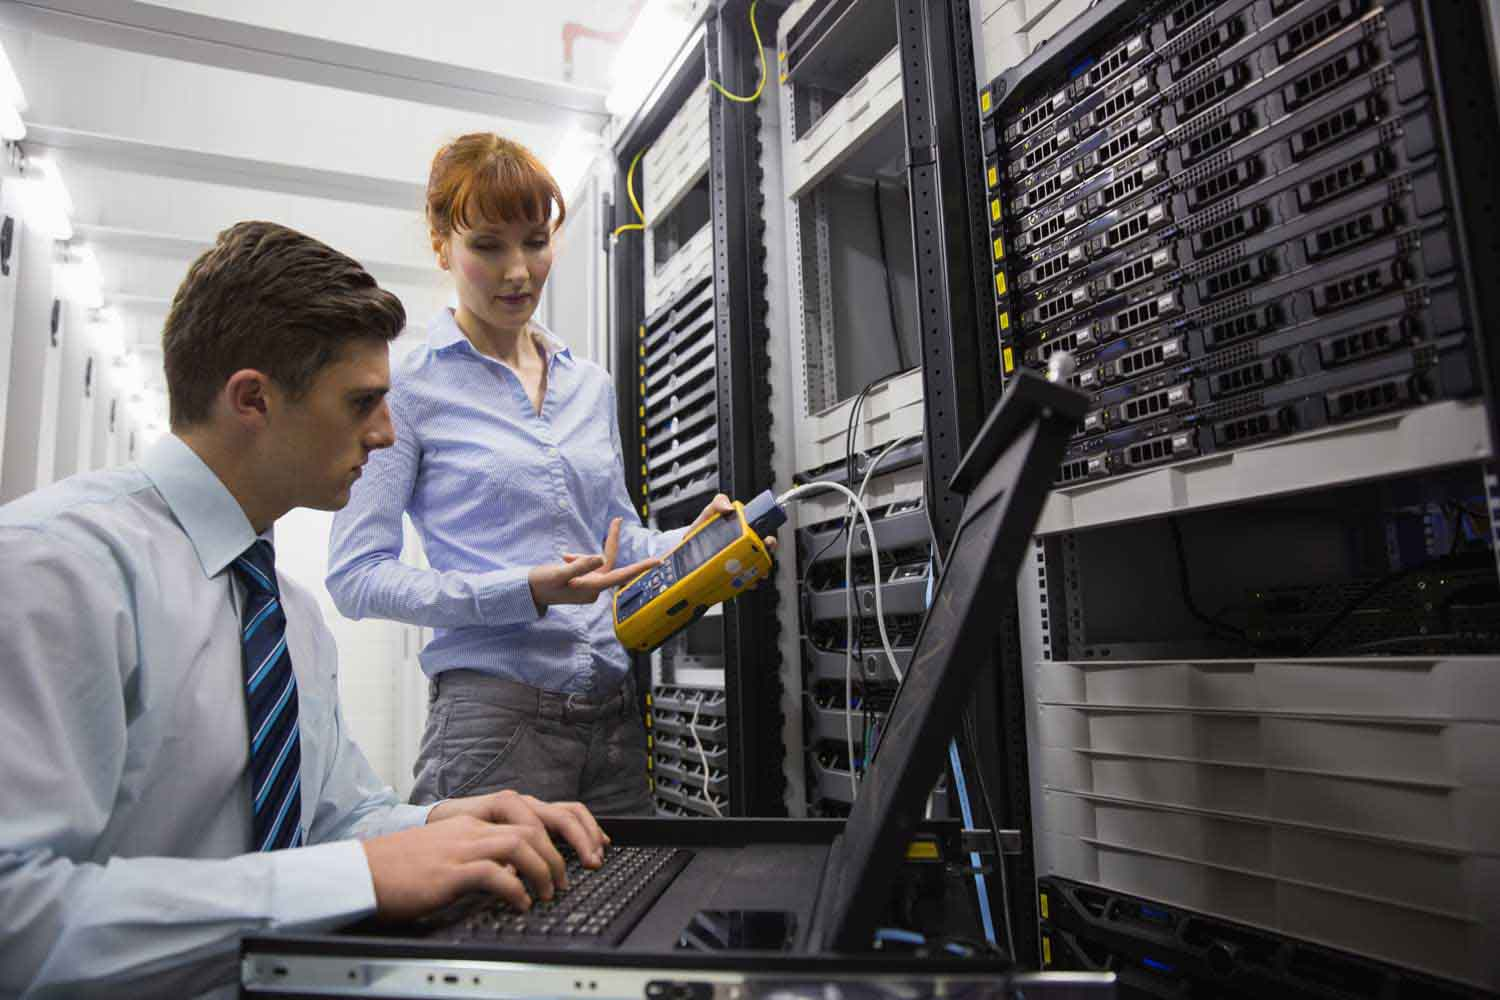 What is a wide area network